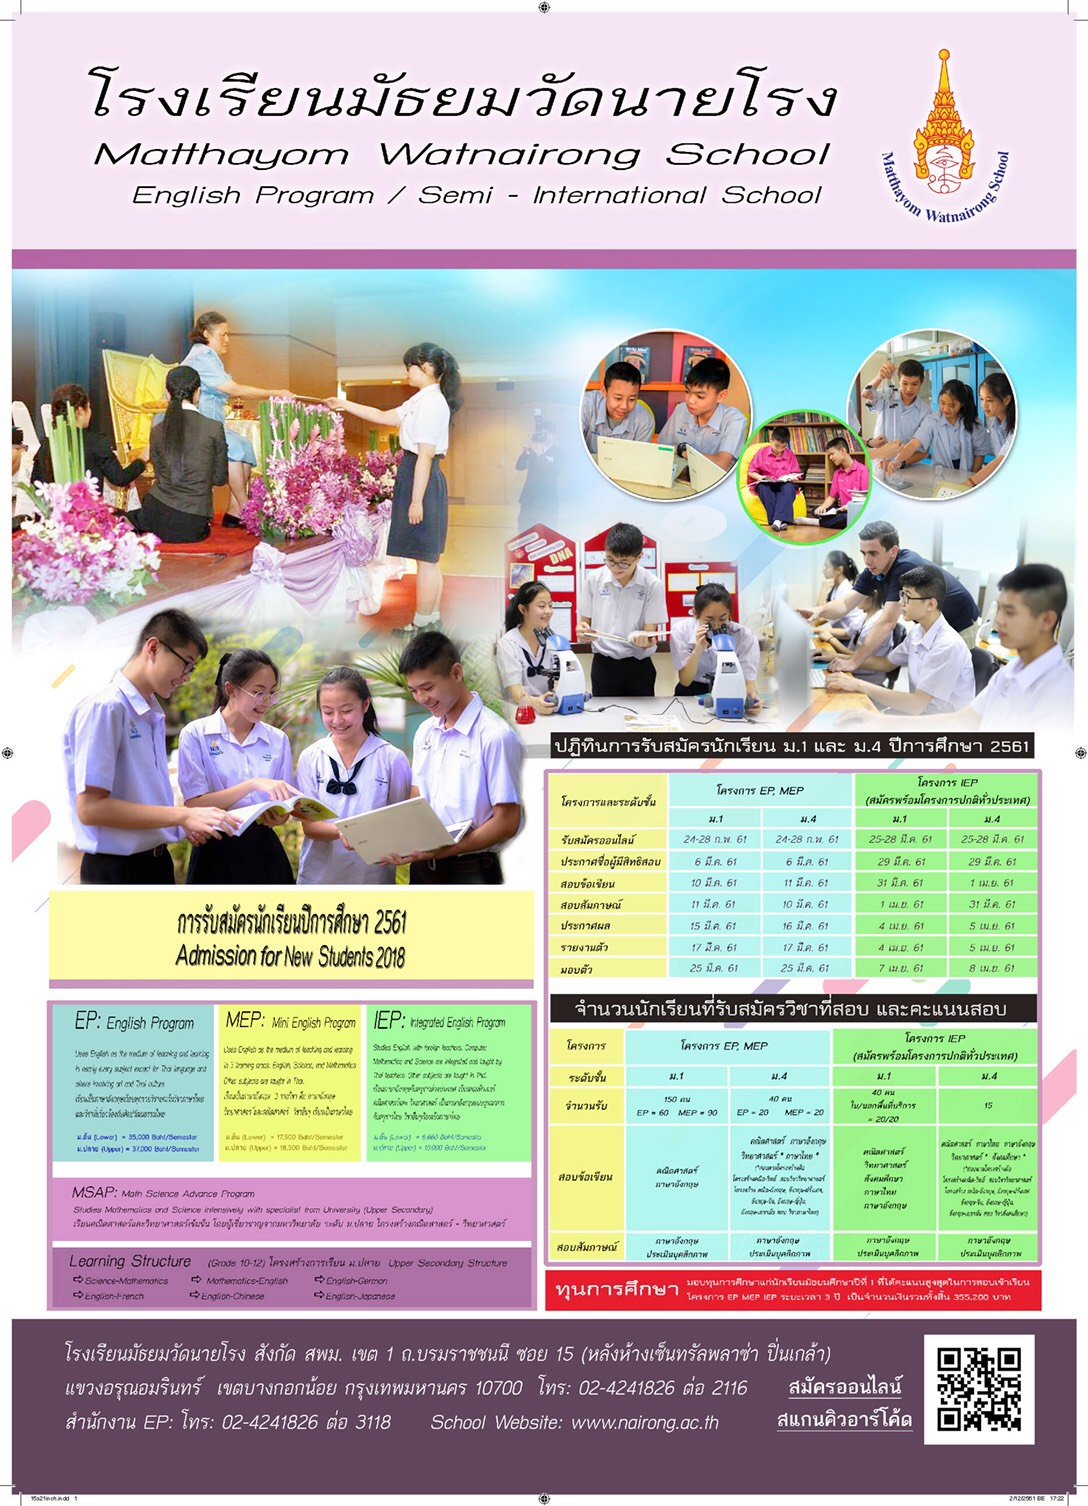 Admission for New Students 2018